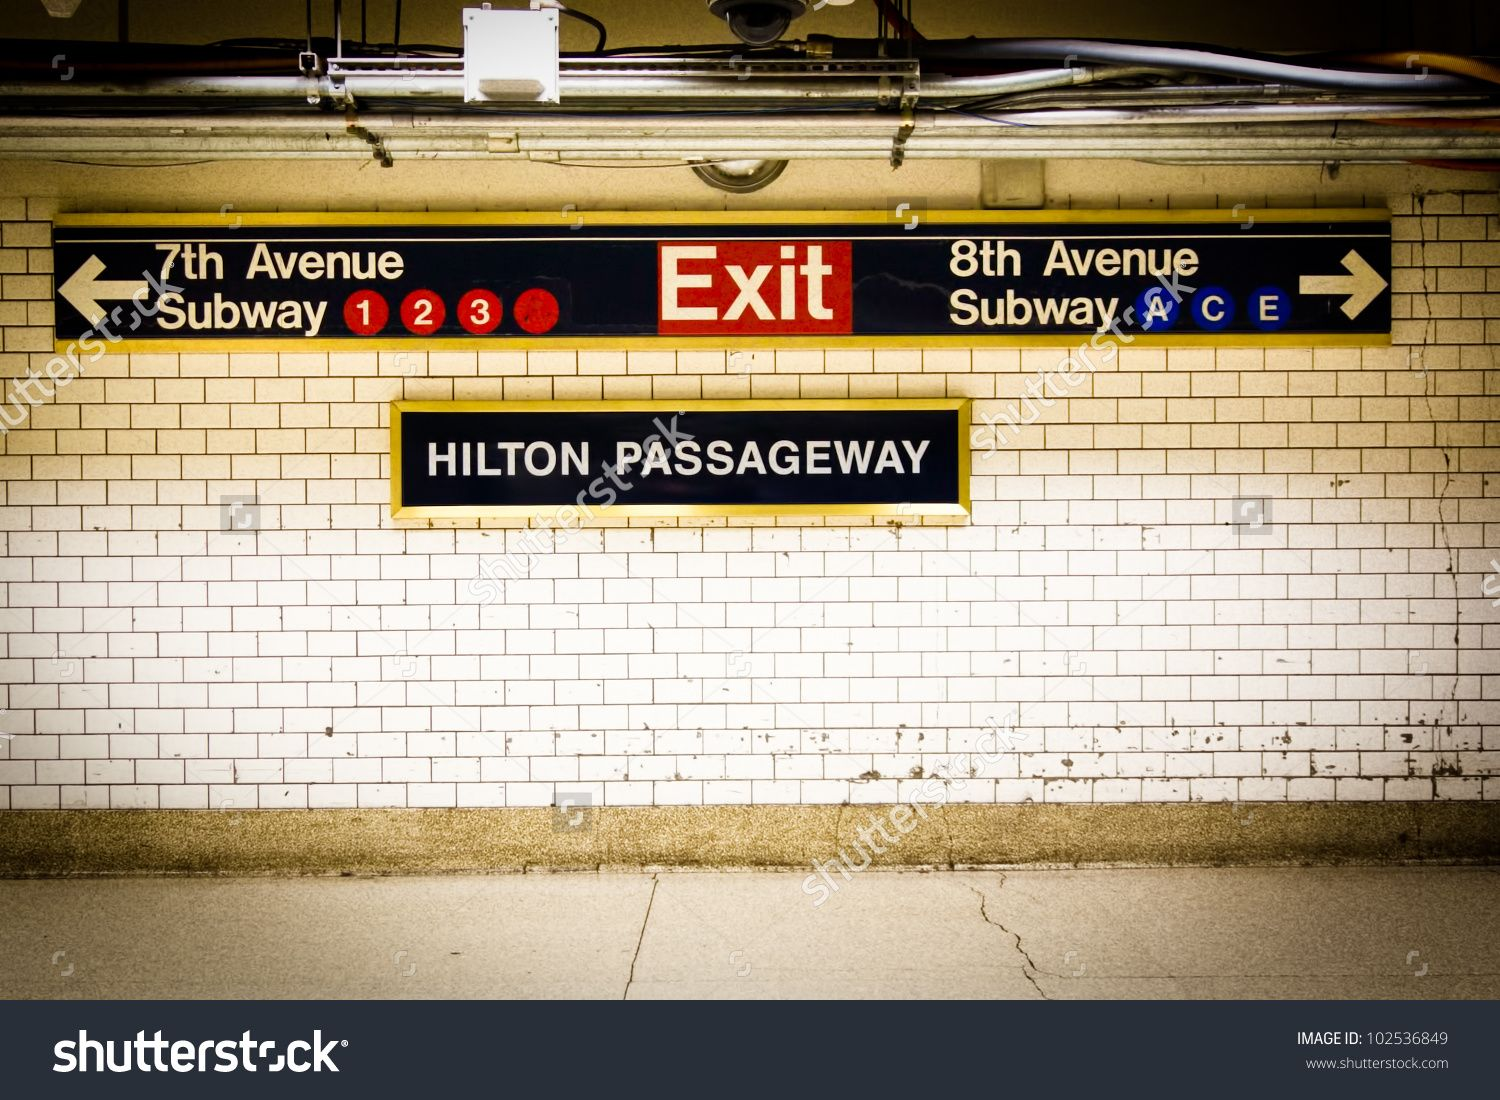 NYC Penn Station subway directional sign on